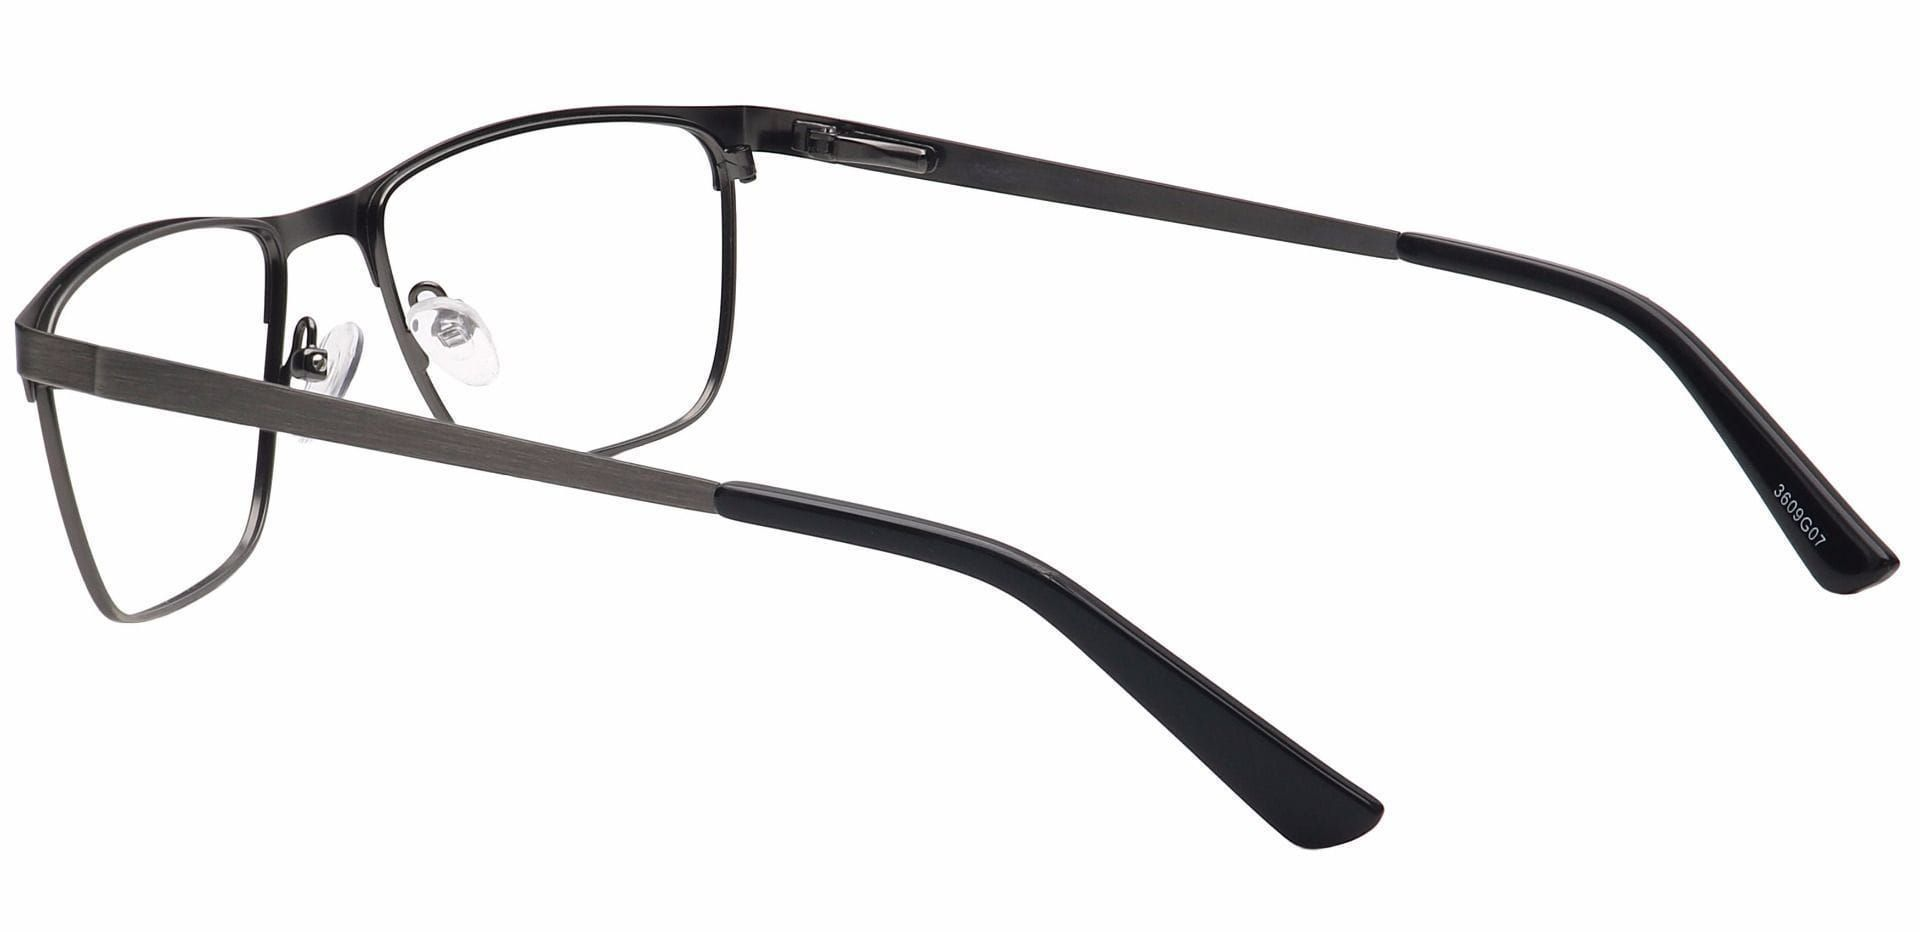 Paradigm Rectangle Reading Glasses - Black